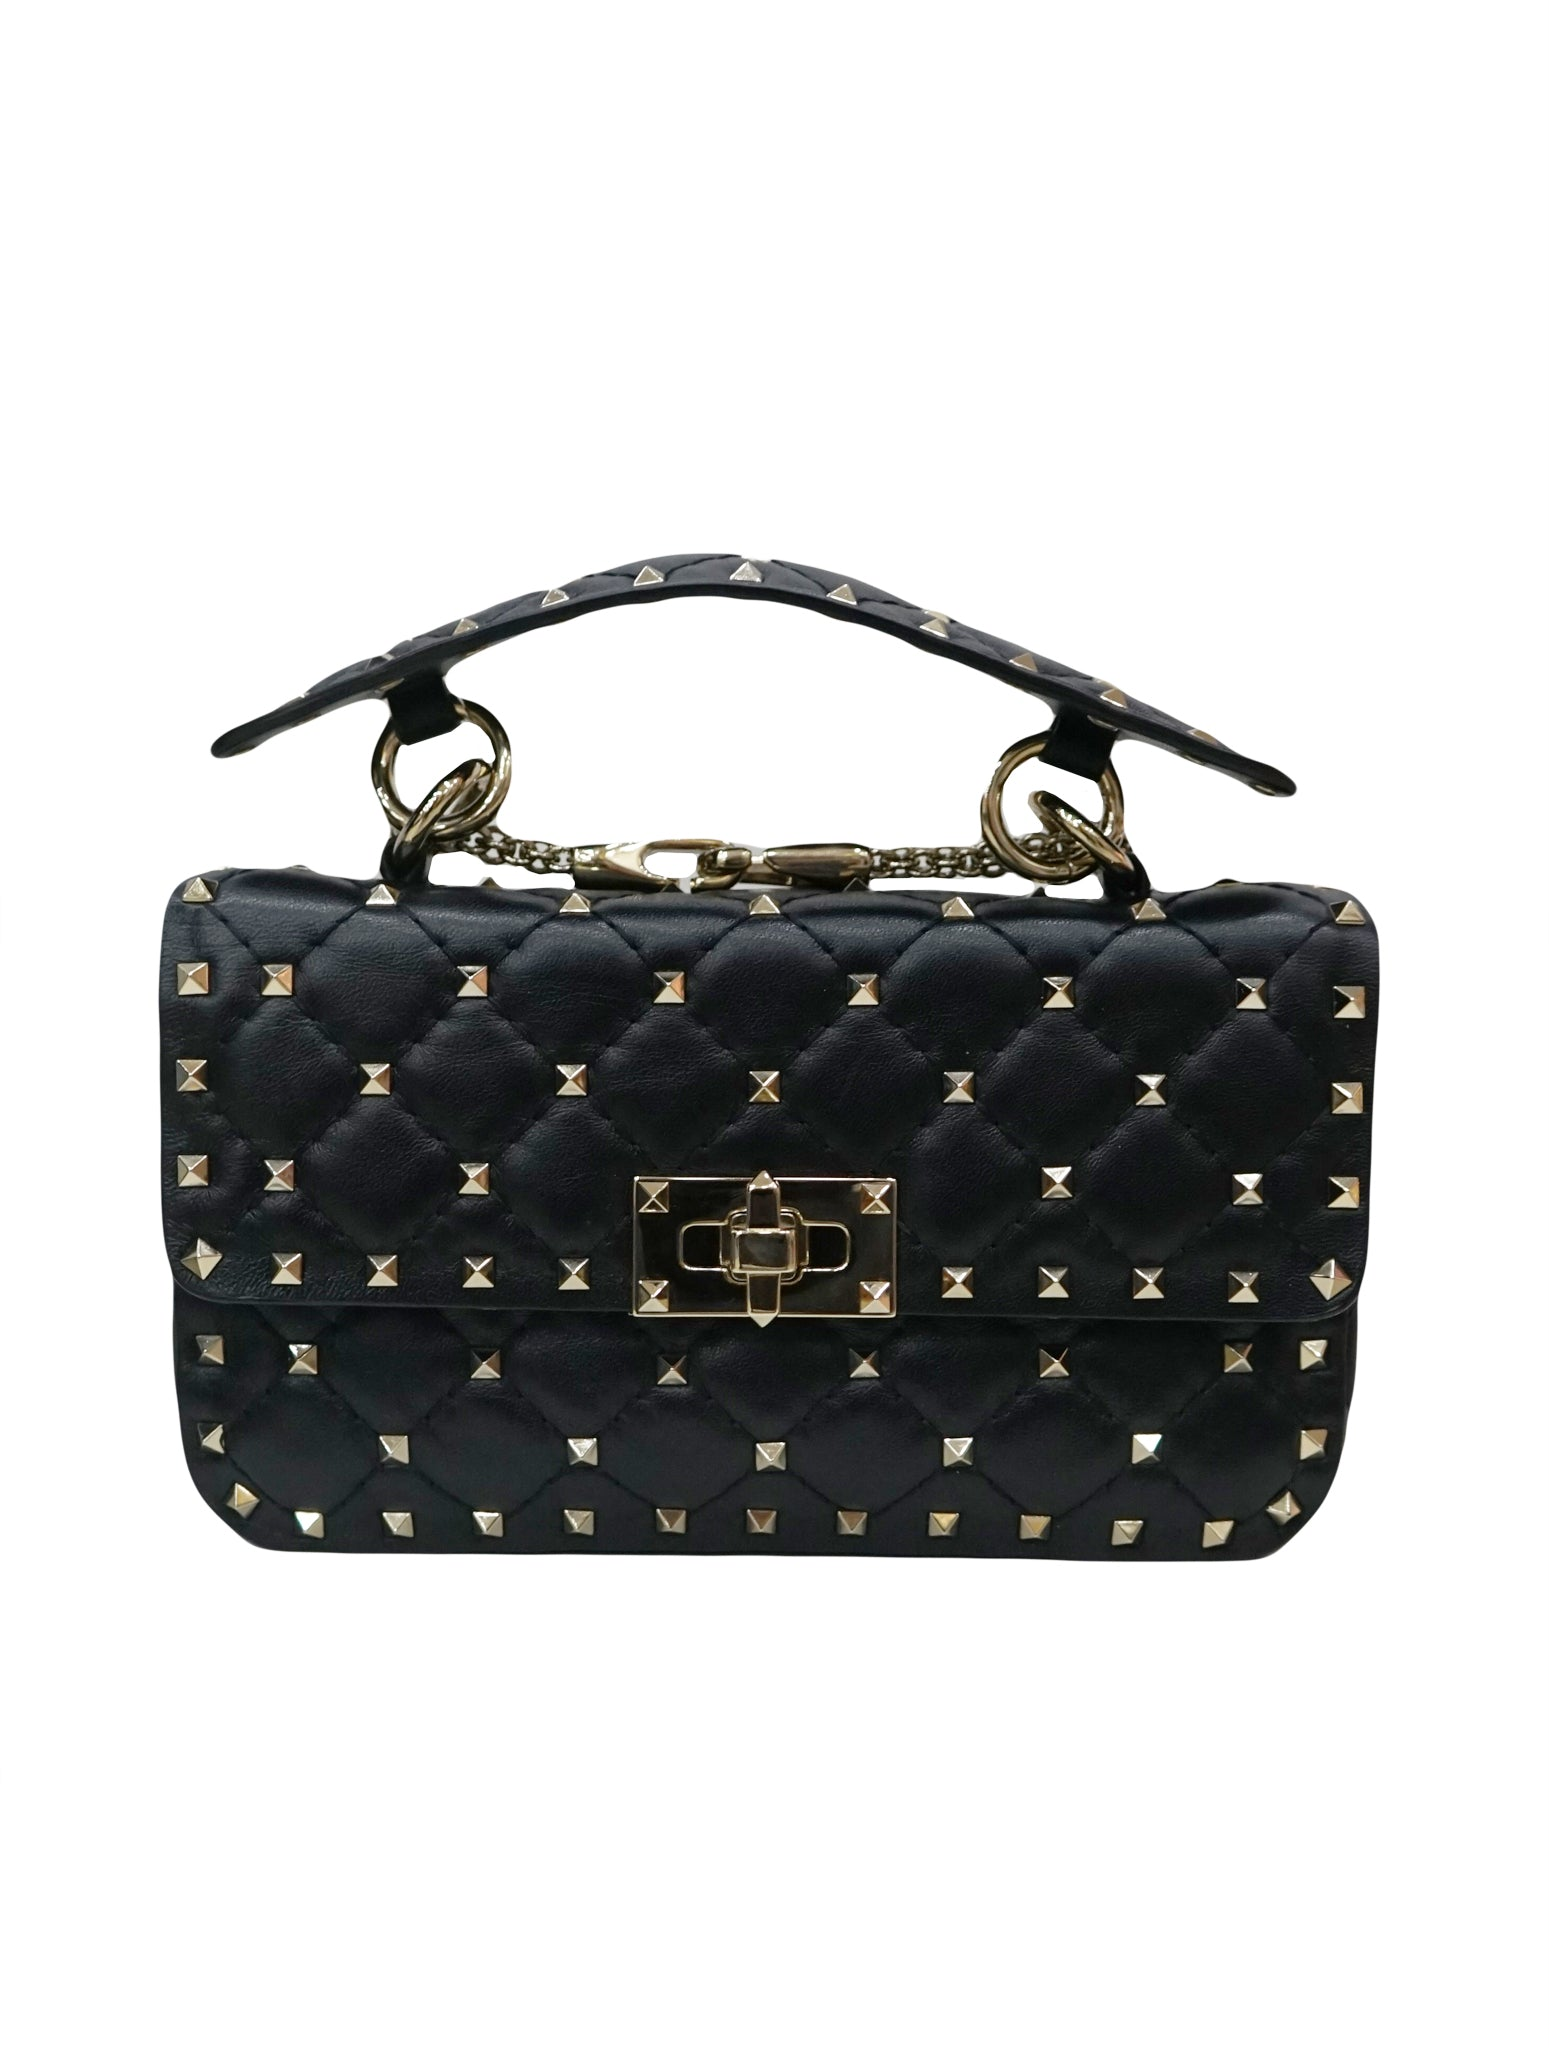 ROCKSTUD SPIKE CROSSBODY BAG